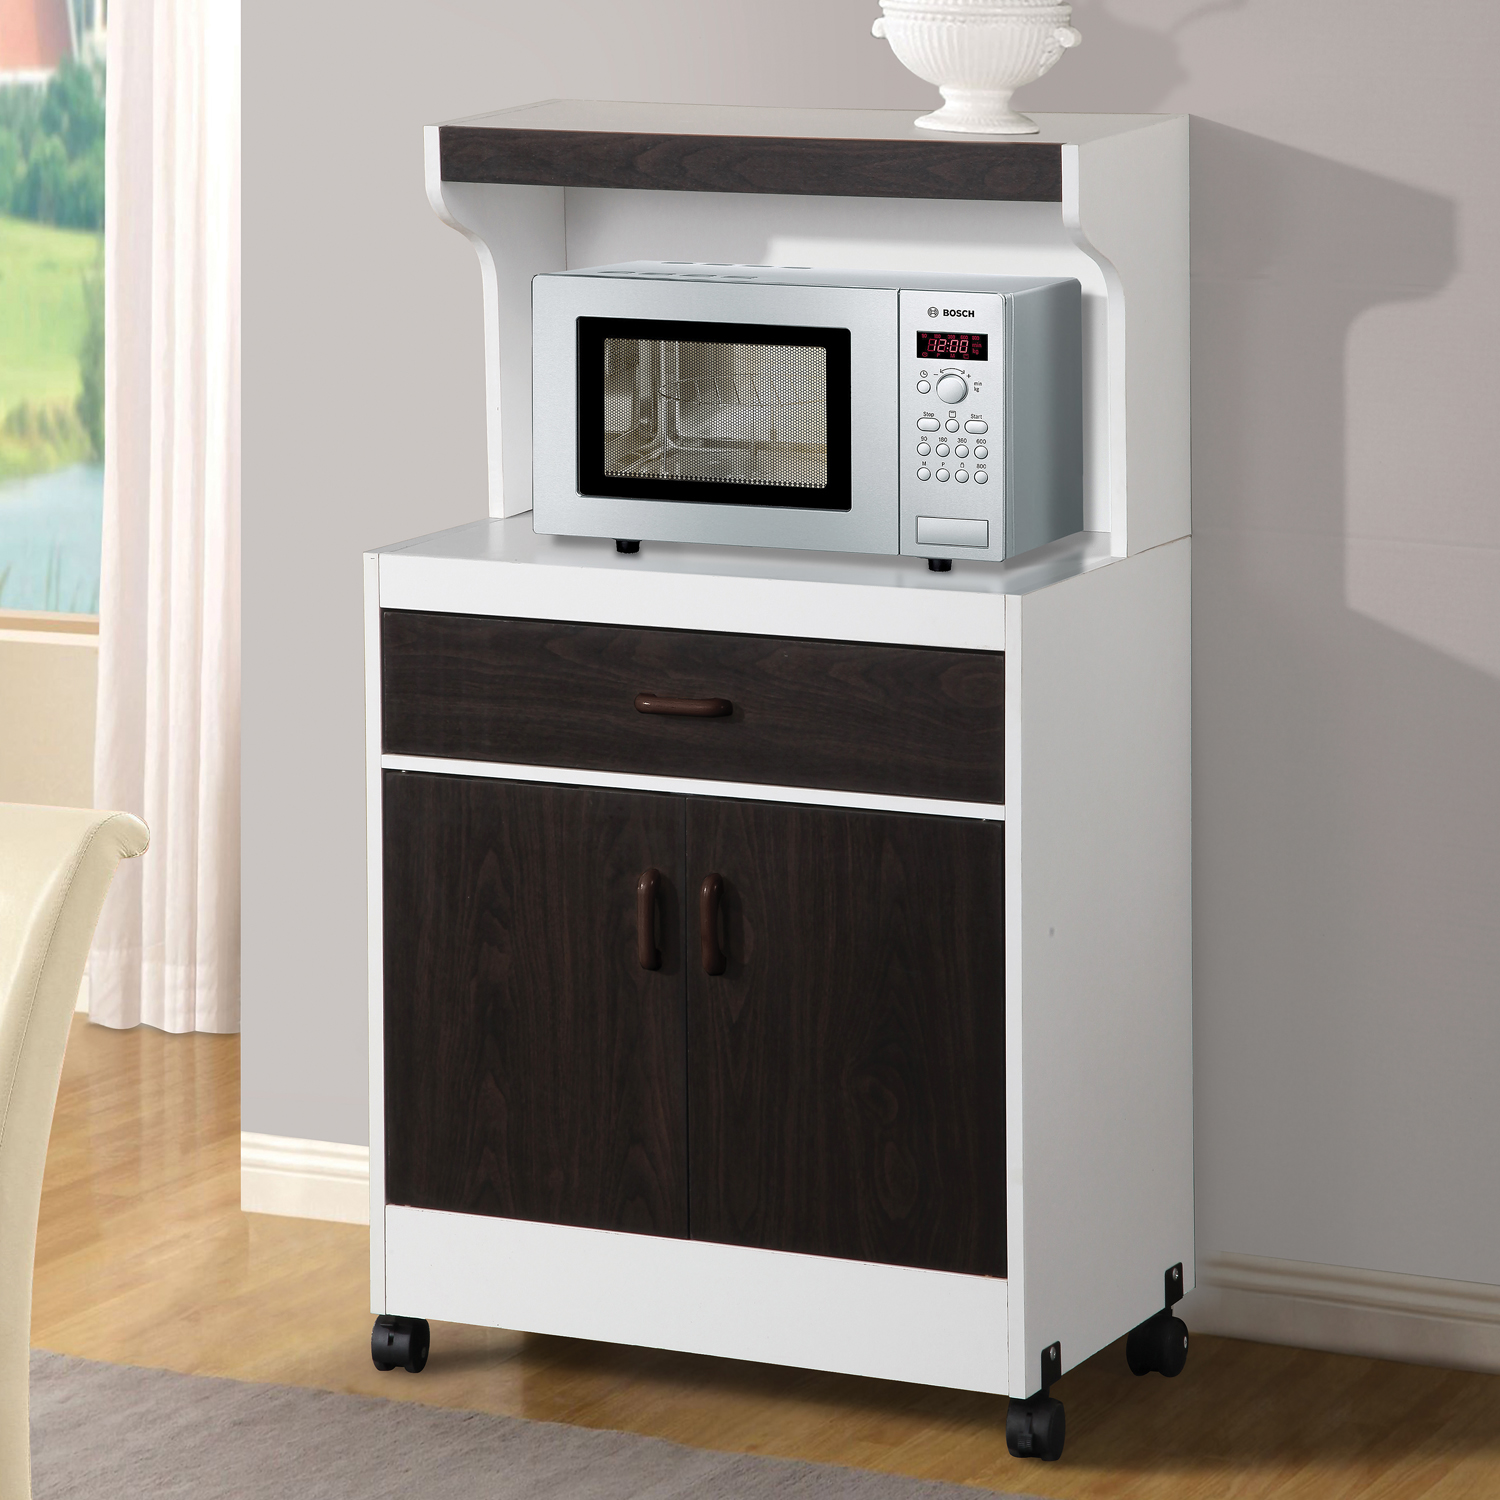 Charmant Home Source La Raine Microwave Kitchen Cart